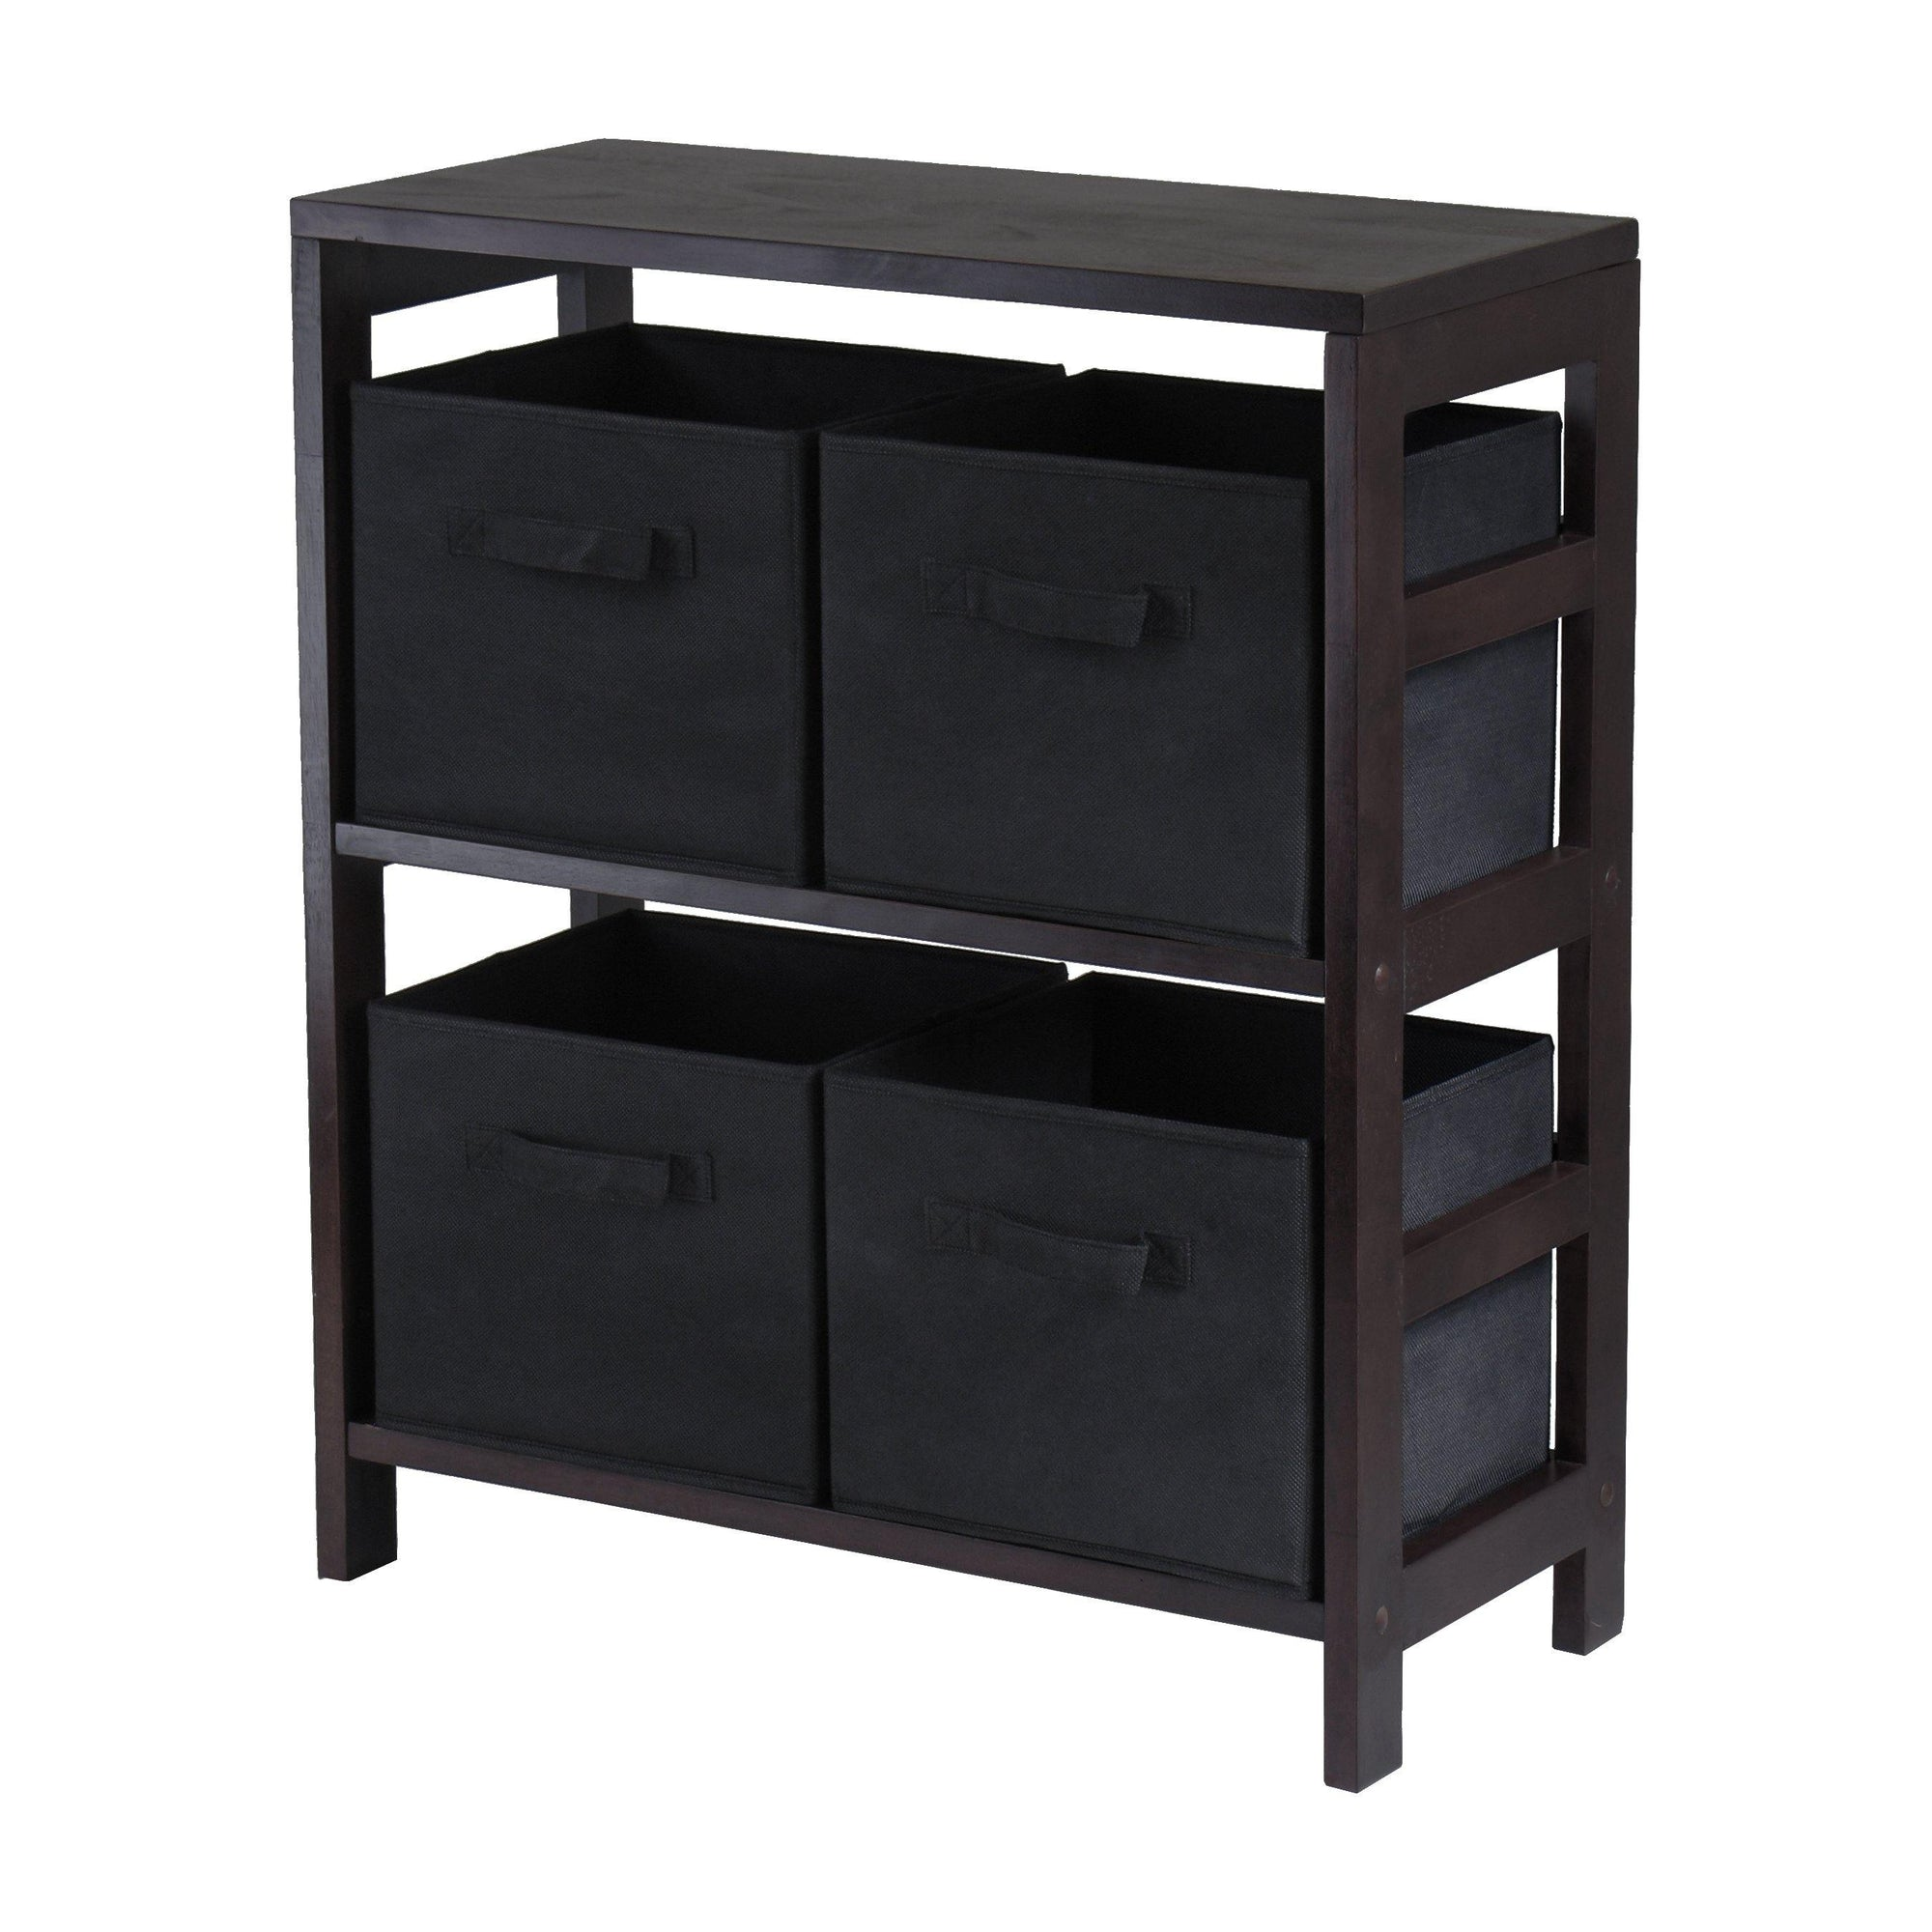 Capri 2-Section M Storage Shelf with 4 Foldable Black Fabric Baskets - My USA Furniture